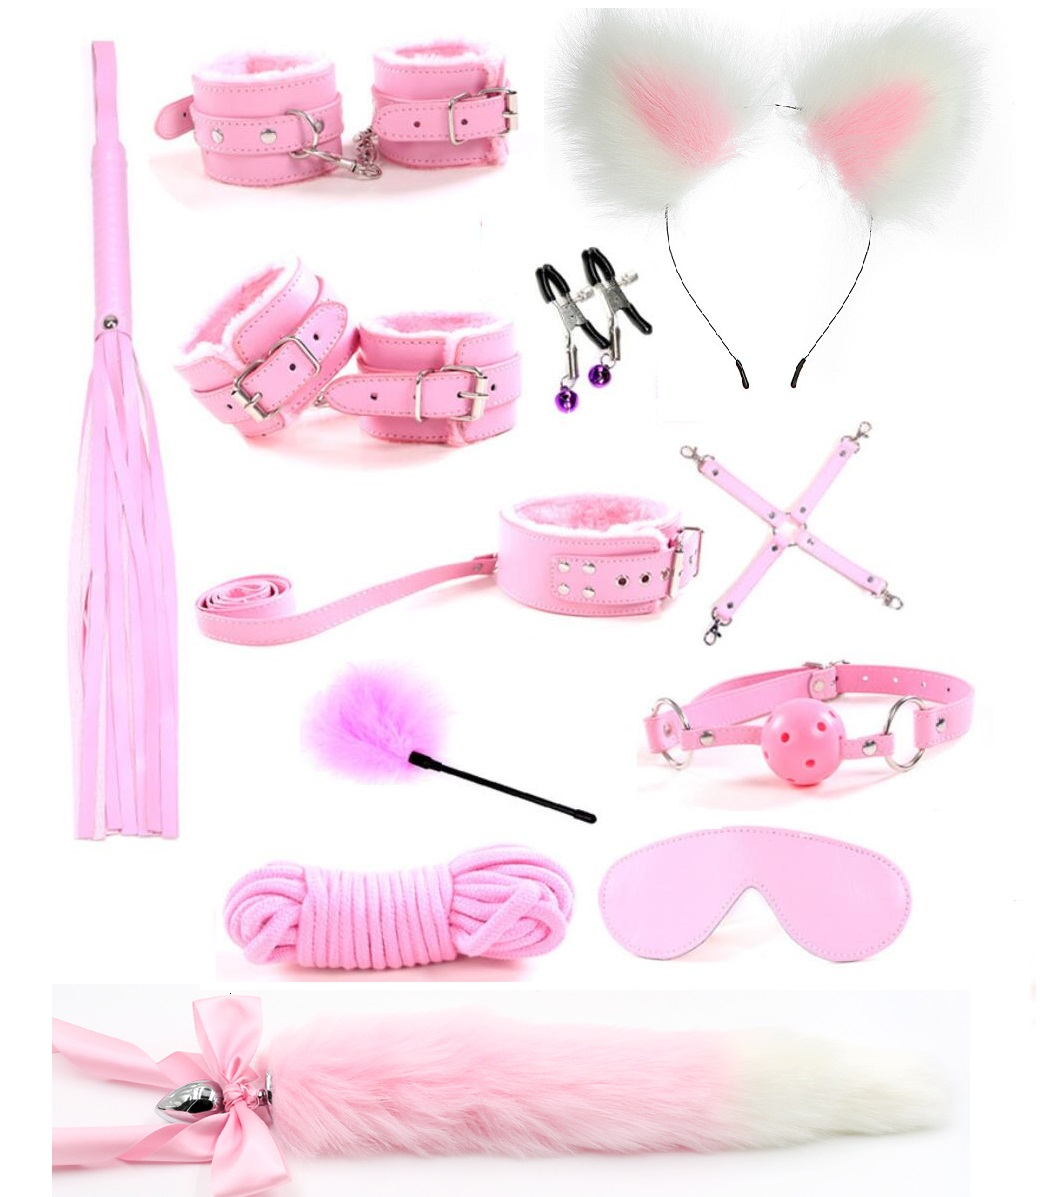 12Pcs Cute Metal Fox Tail Anal Butt Plug Handcuffs Bdsm Bondage Set Nipple Clamps Gag Whip Rope Sex Toys For Couple Woman Men